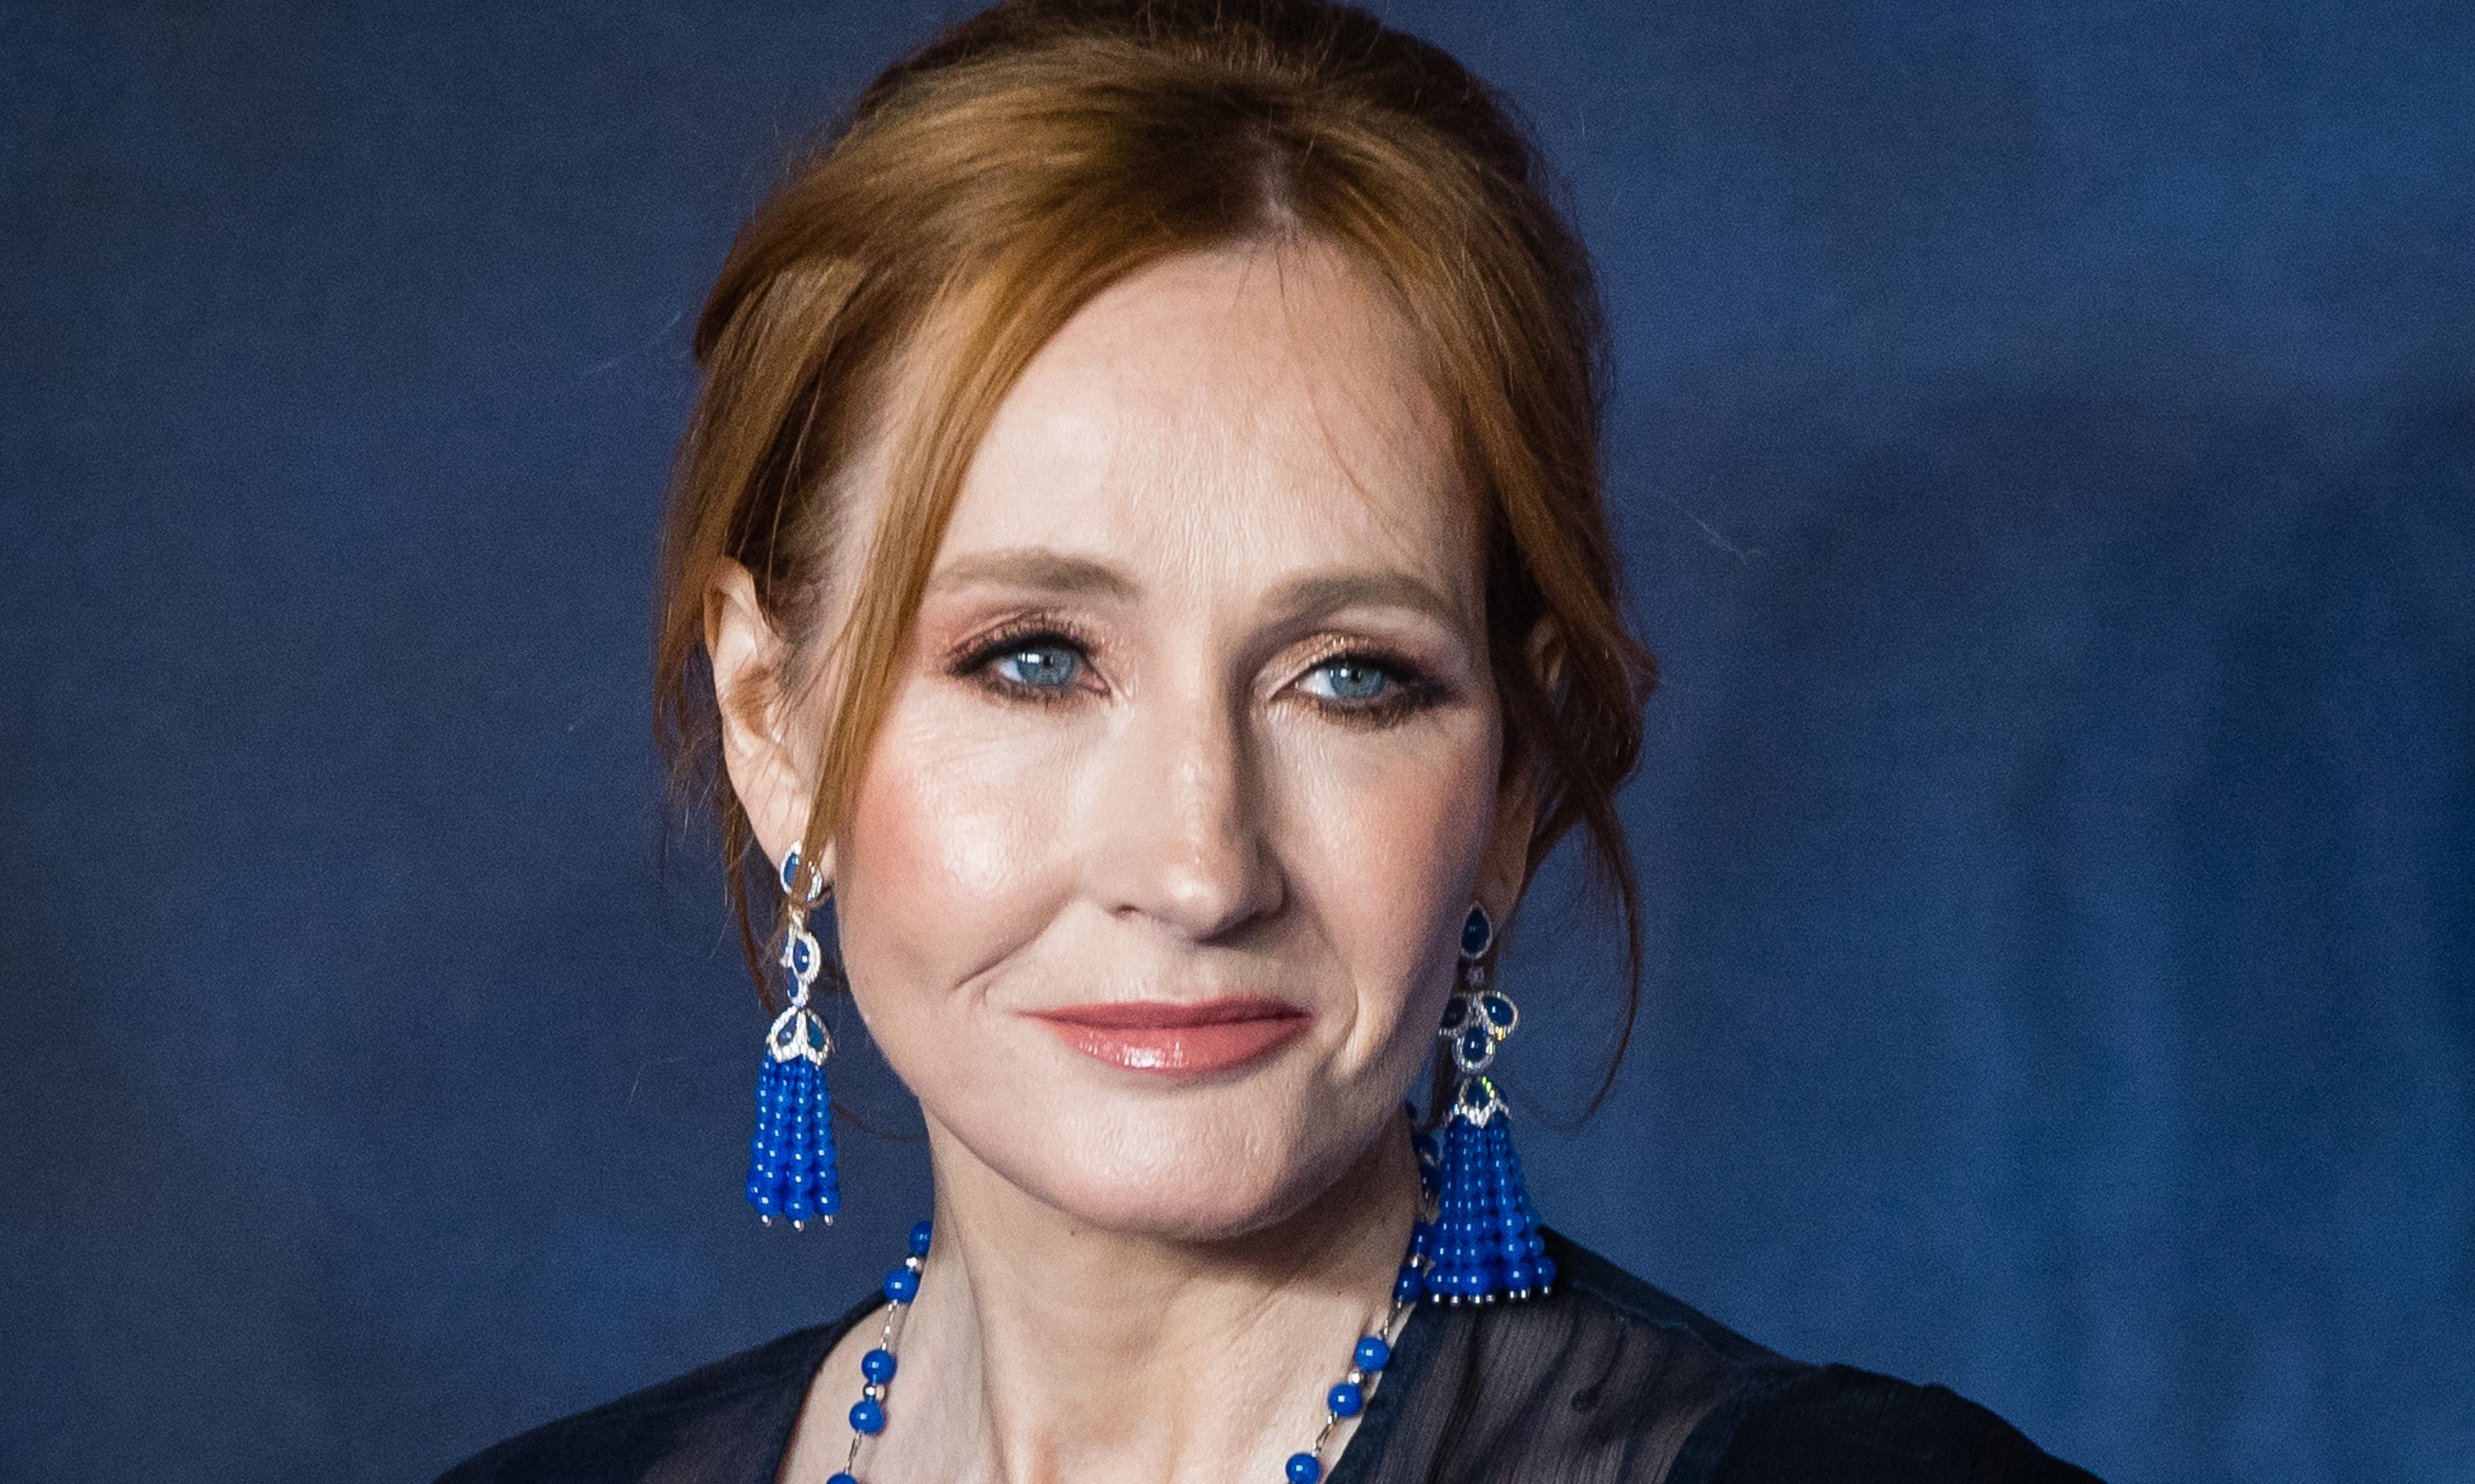 Rowling Remarks Inspire Donations to Trans Charity